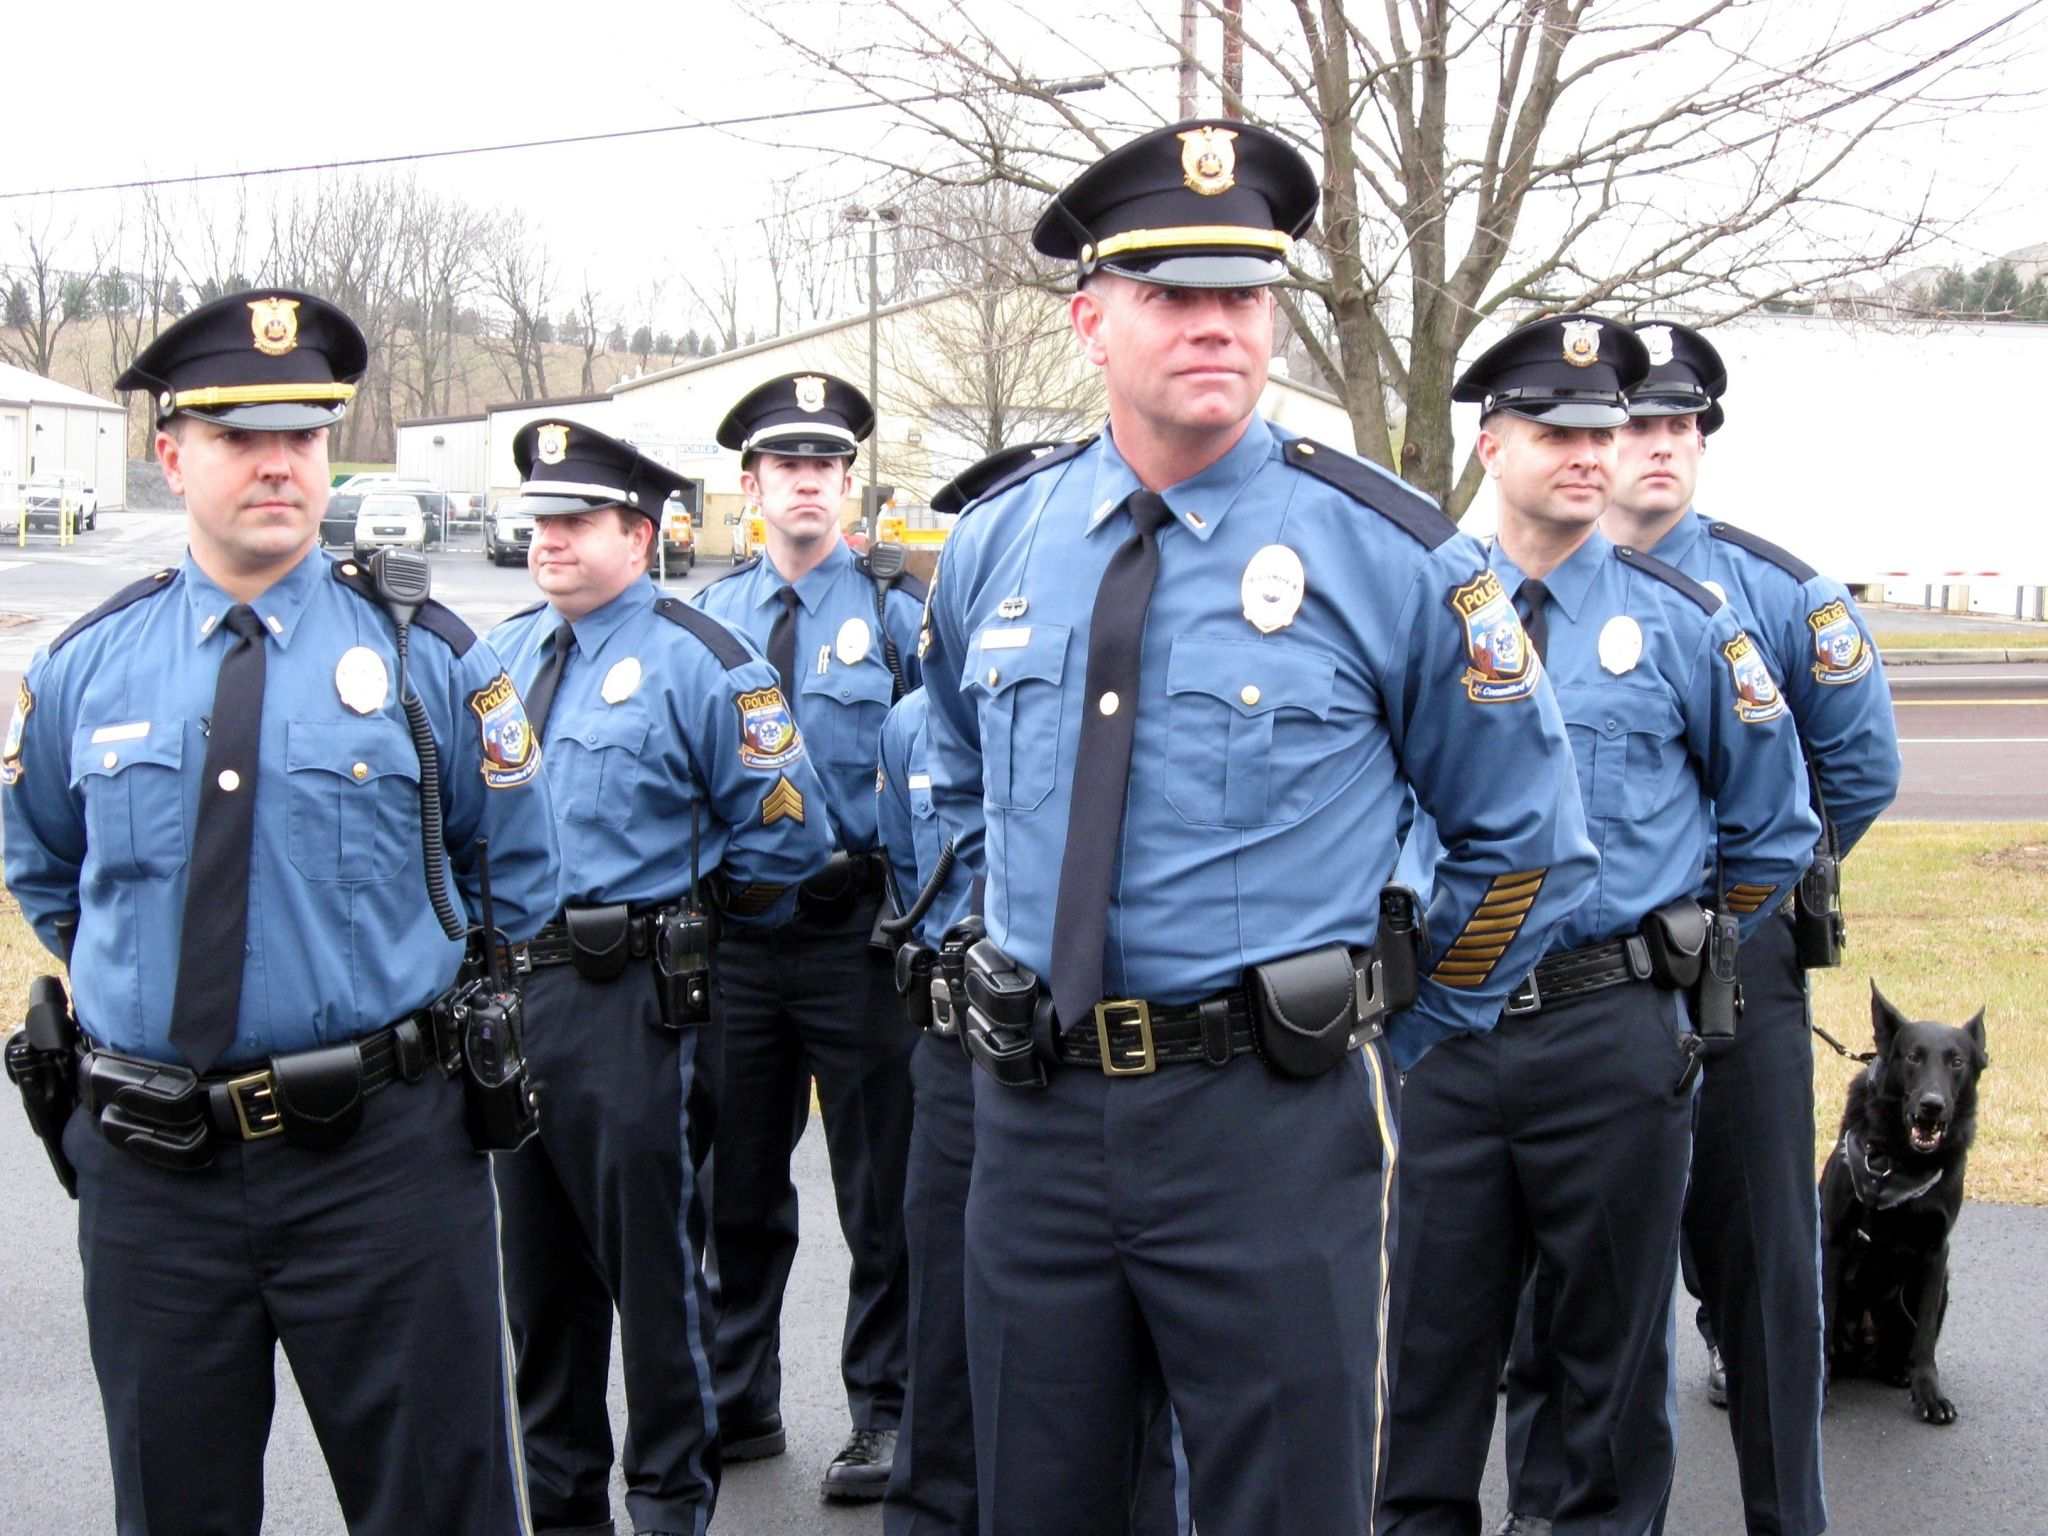 Police Free Download Pictures Men In Uniform Police Uniforms Police